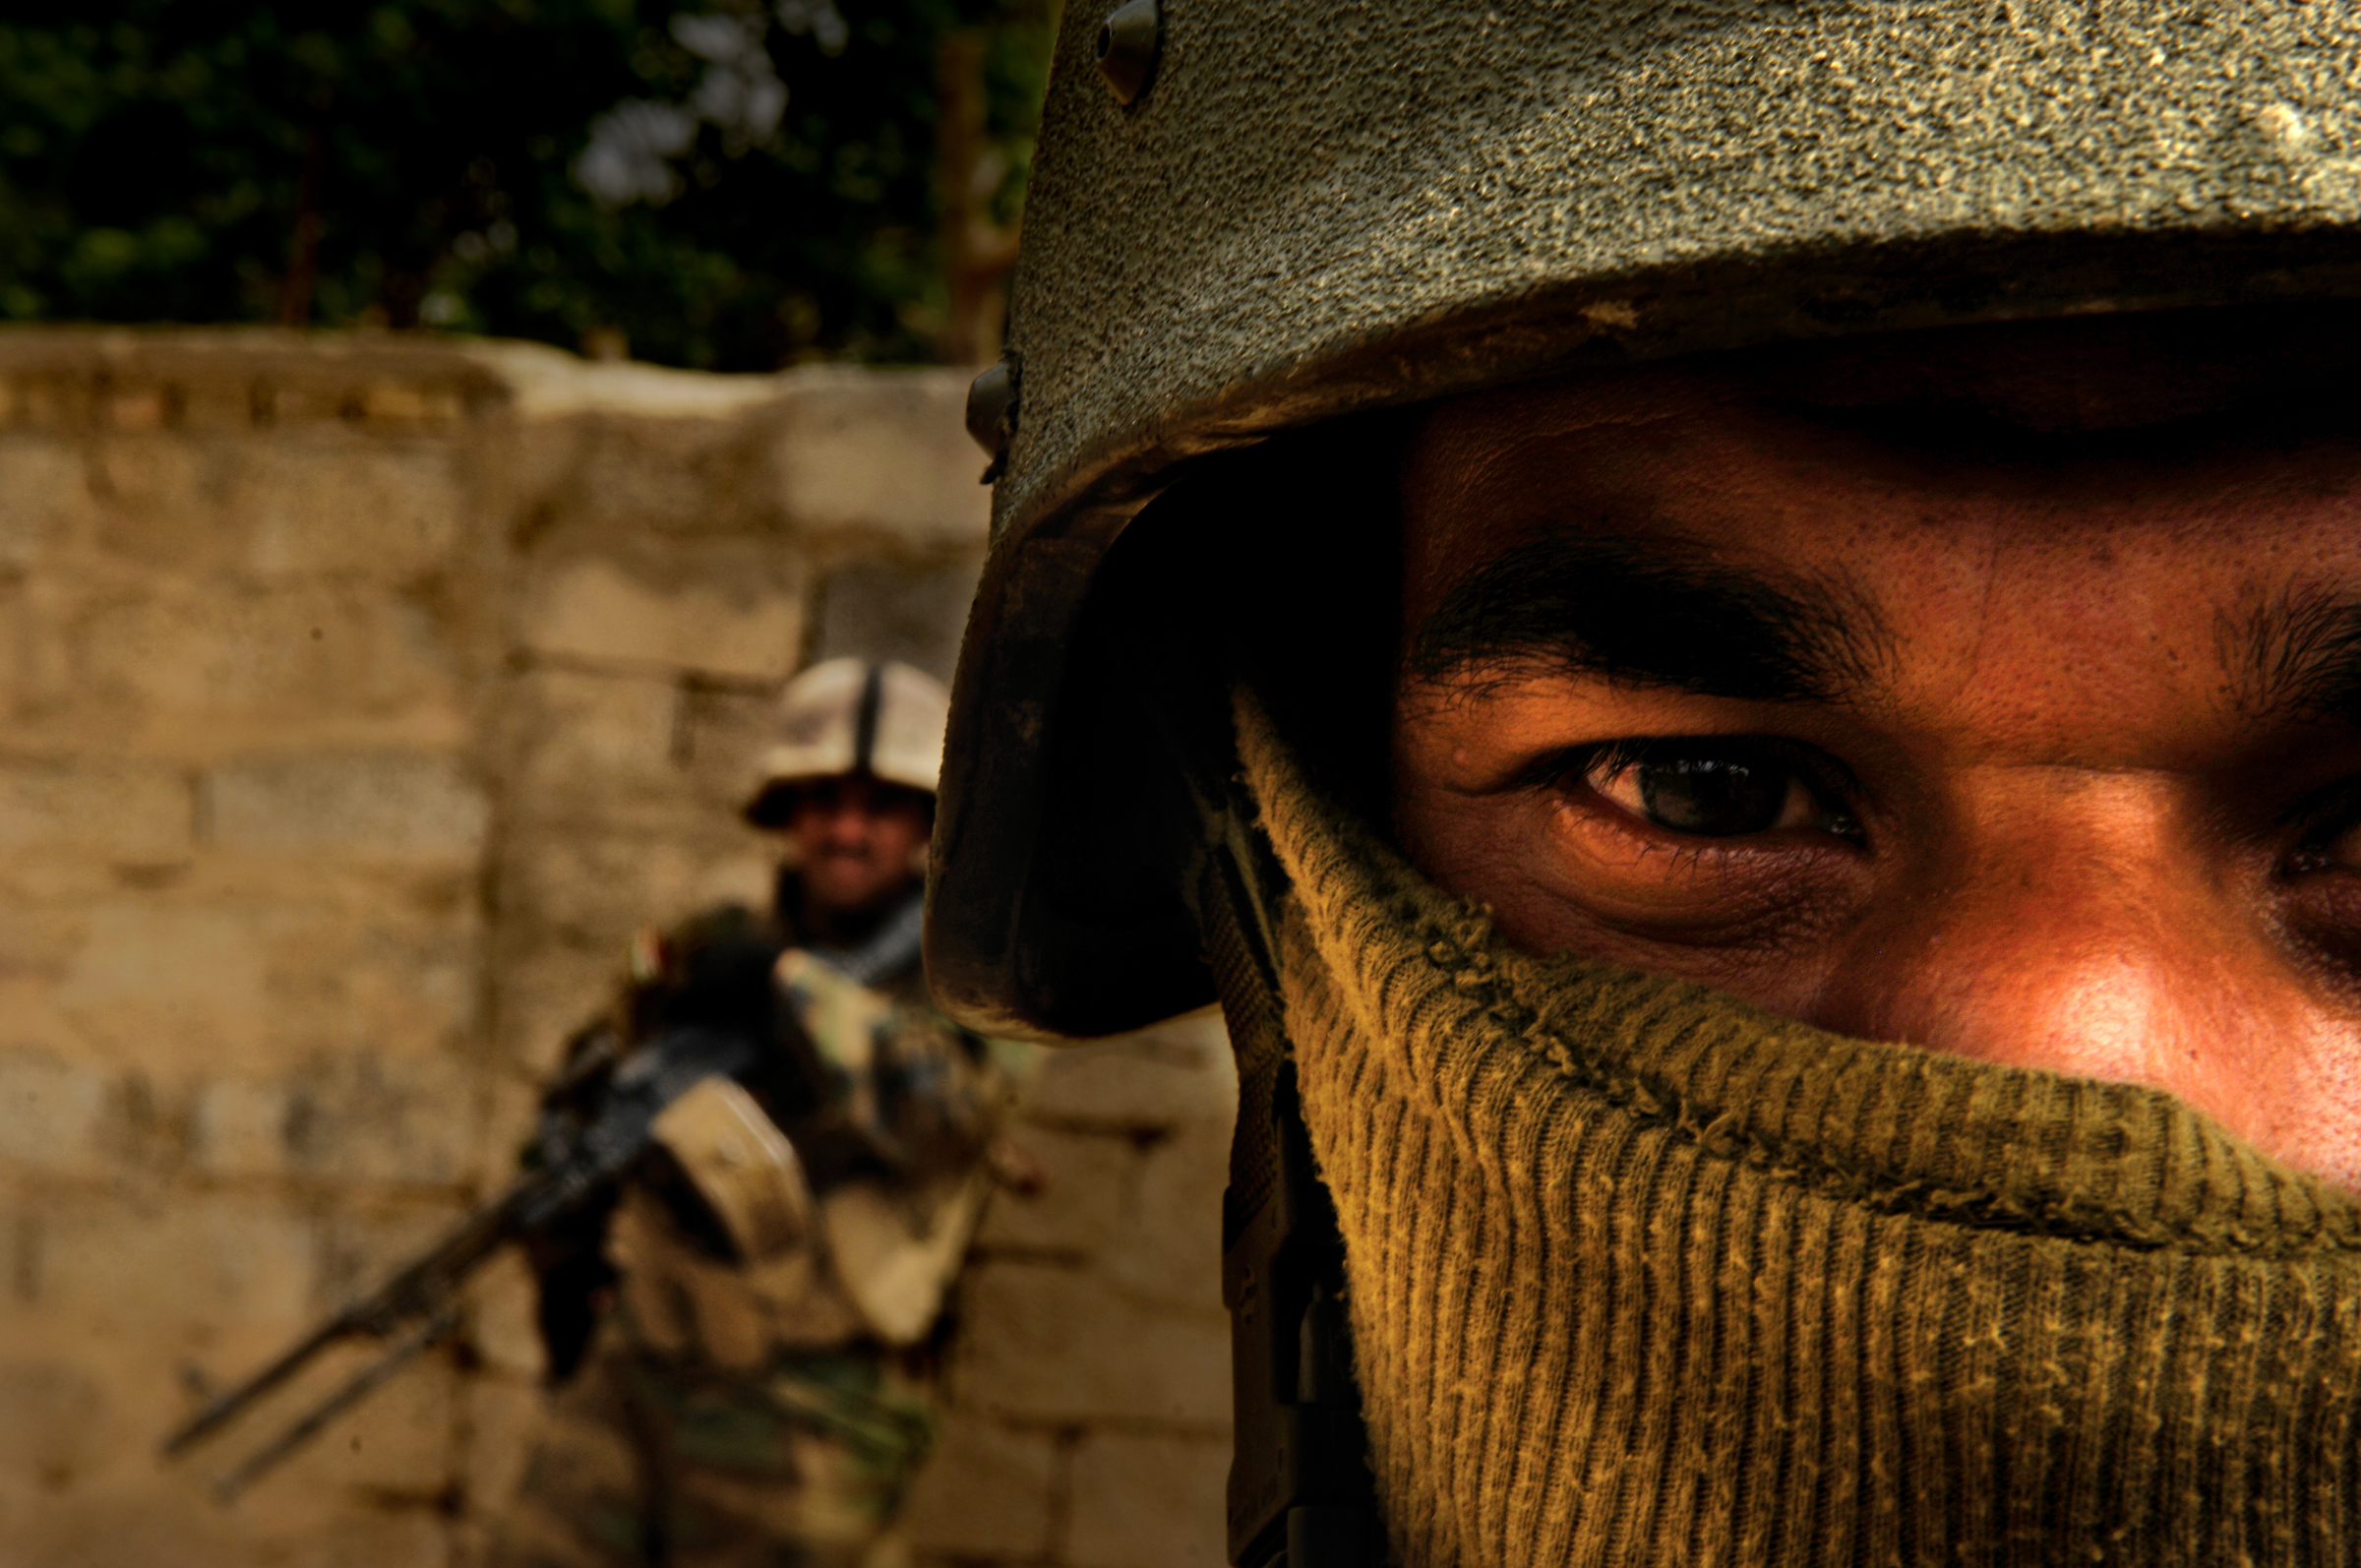 An Iraqi Army soldier covers his face to maintain anonymity within his community during routine foot patrols in New Baqubah, Iraq. 2007© Stacy Pearsall